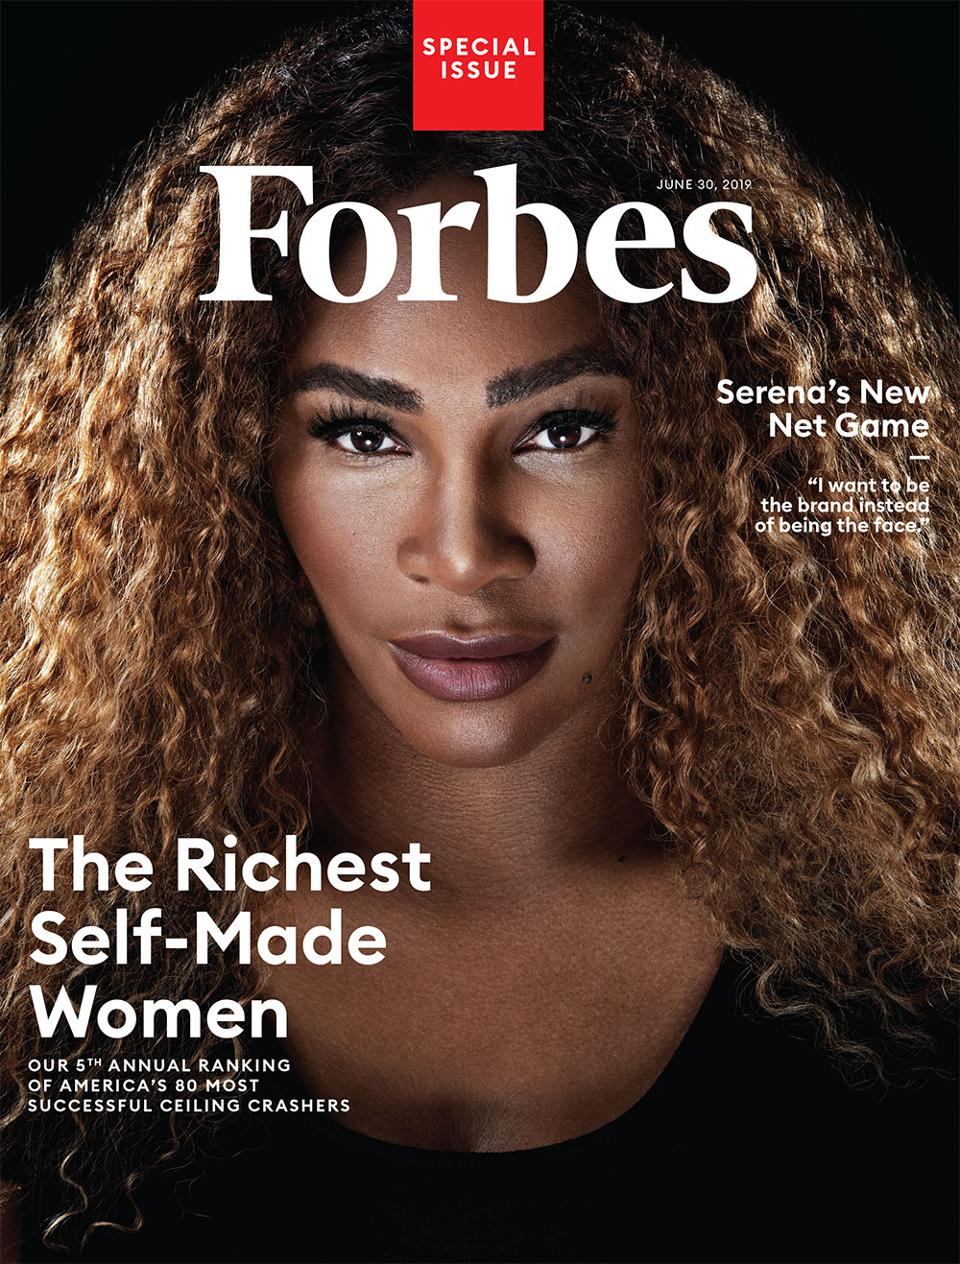 Forbes magazine cover self-made women issue